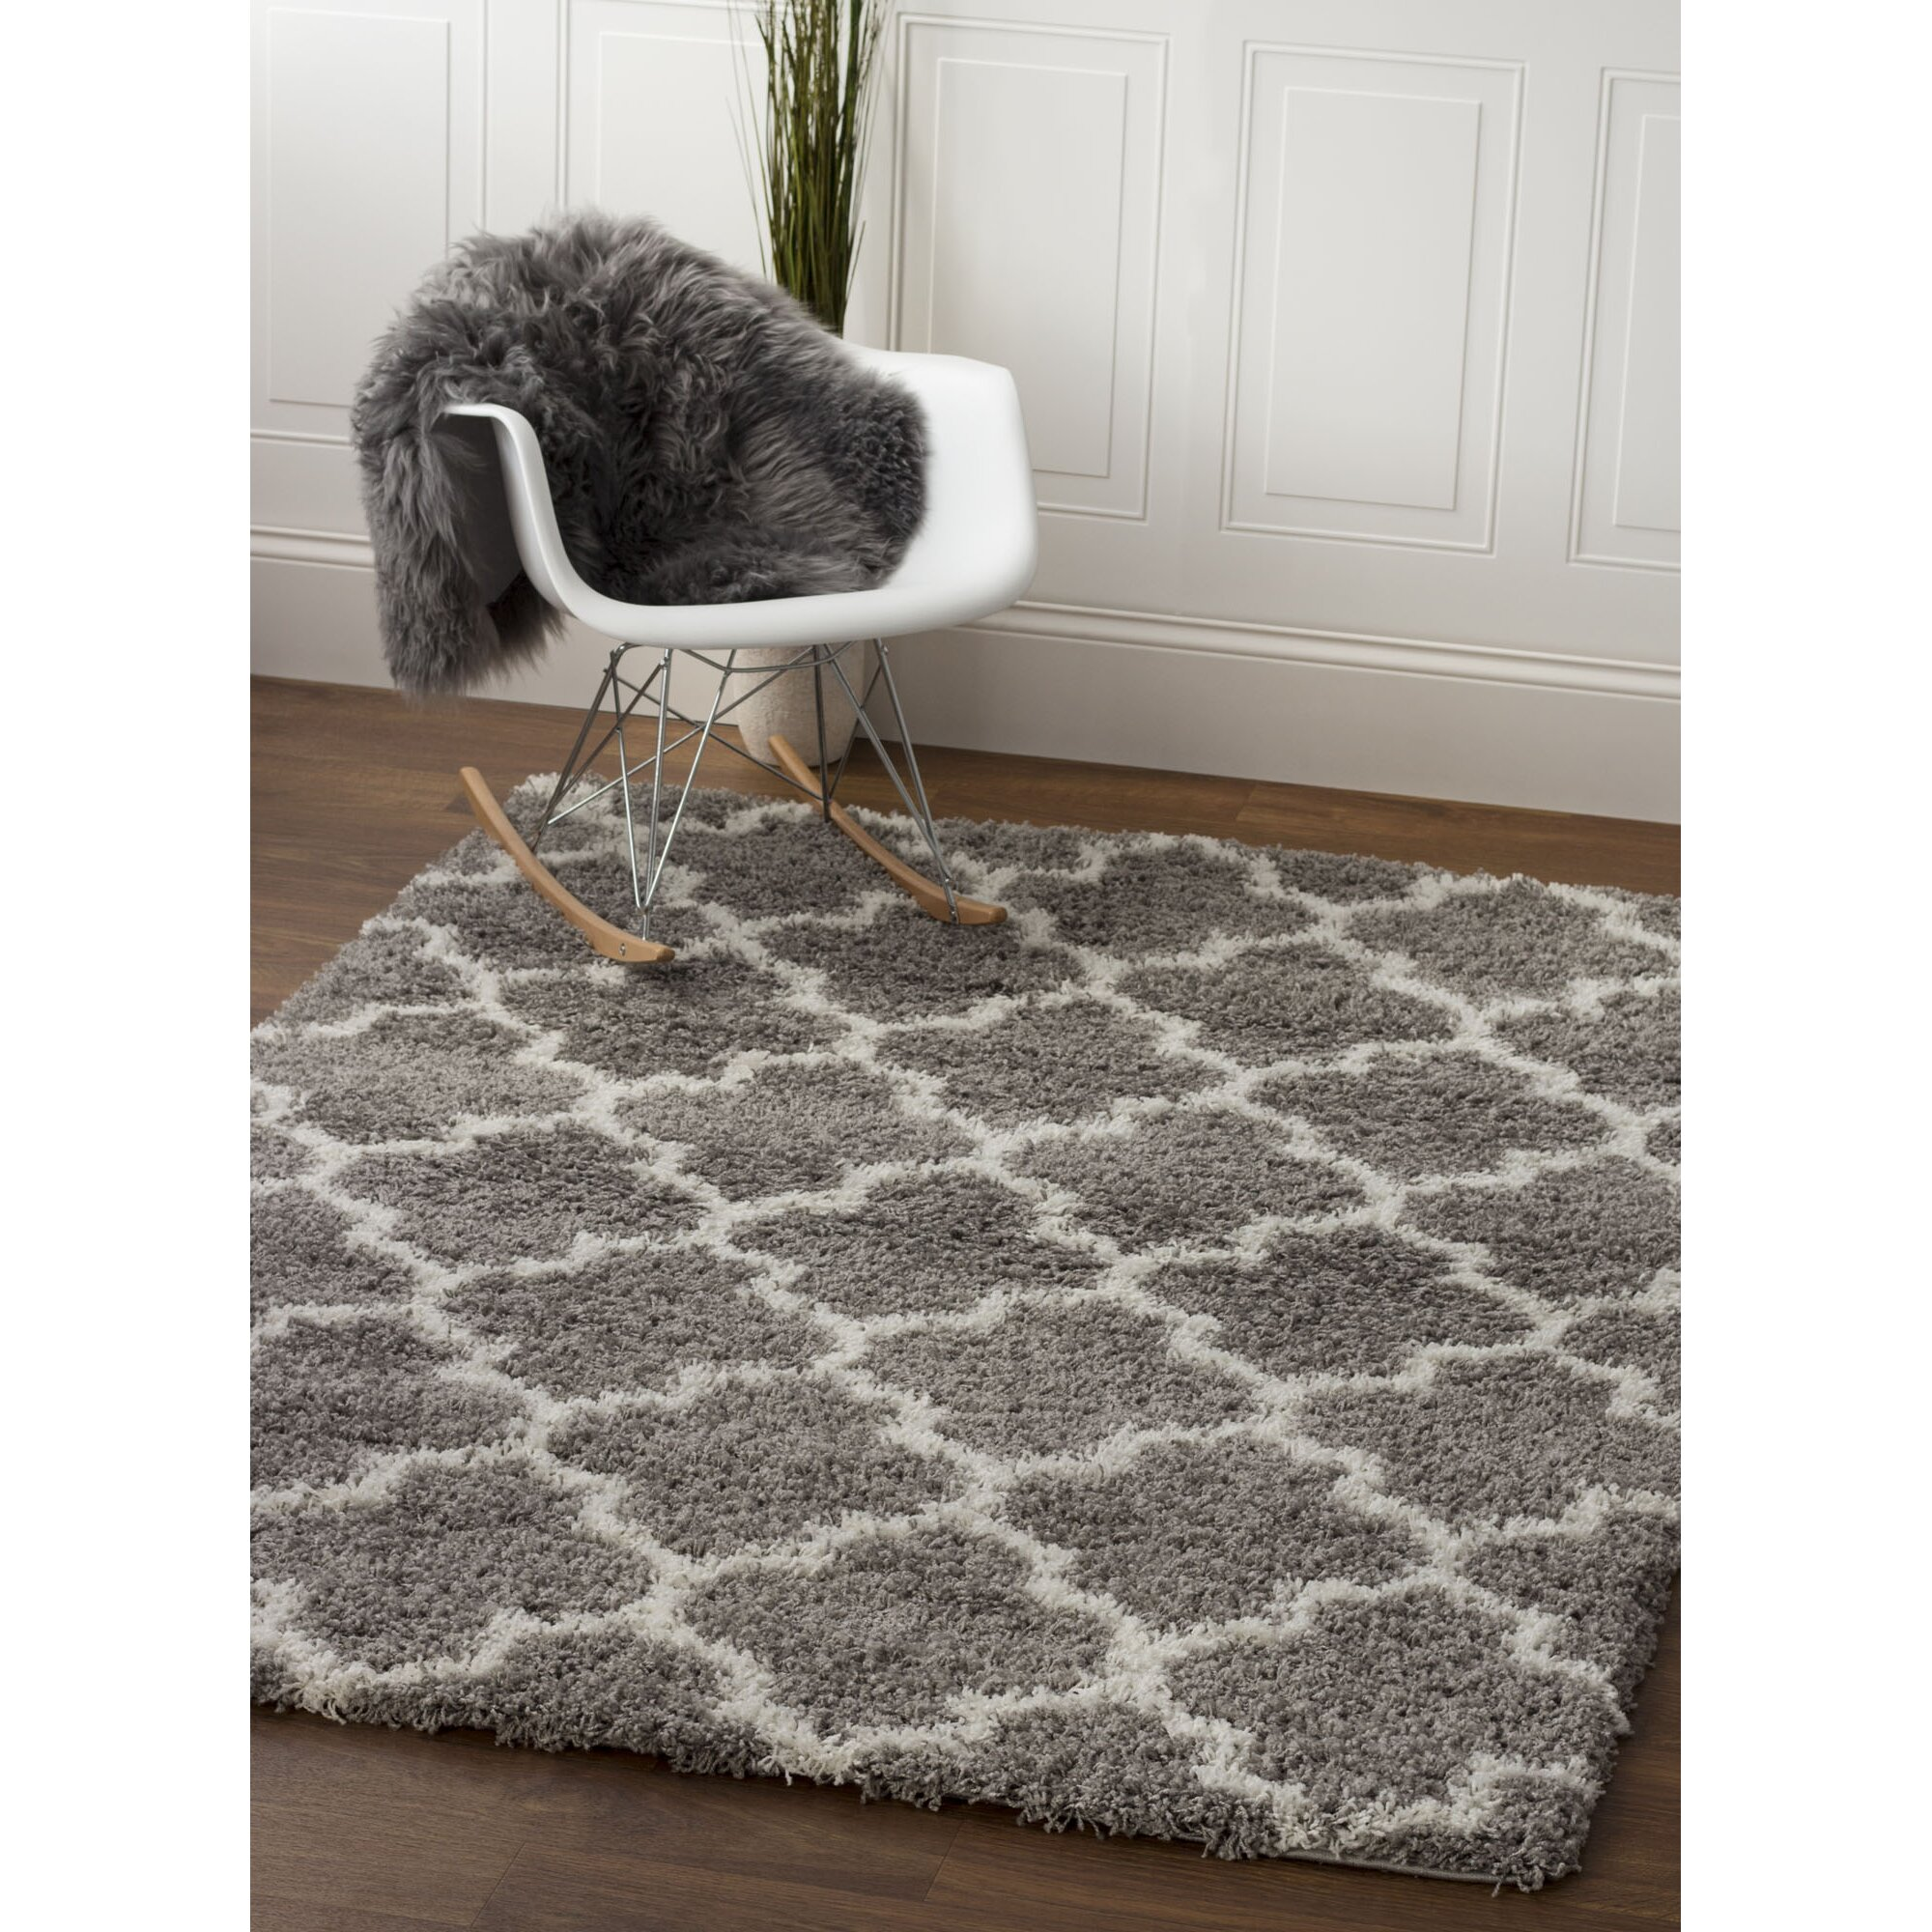 Chiro Deluxe Mattress Flexform Groundpiece Bed Moroccan Area Rug picture on Cozy White Shag ...